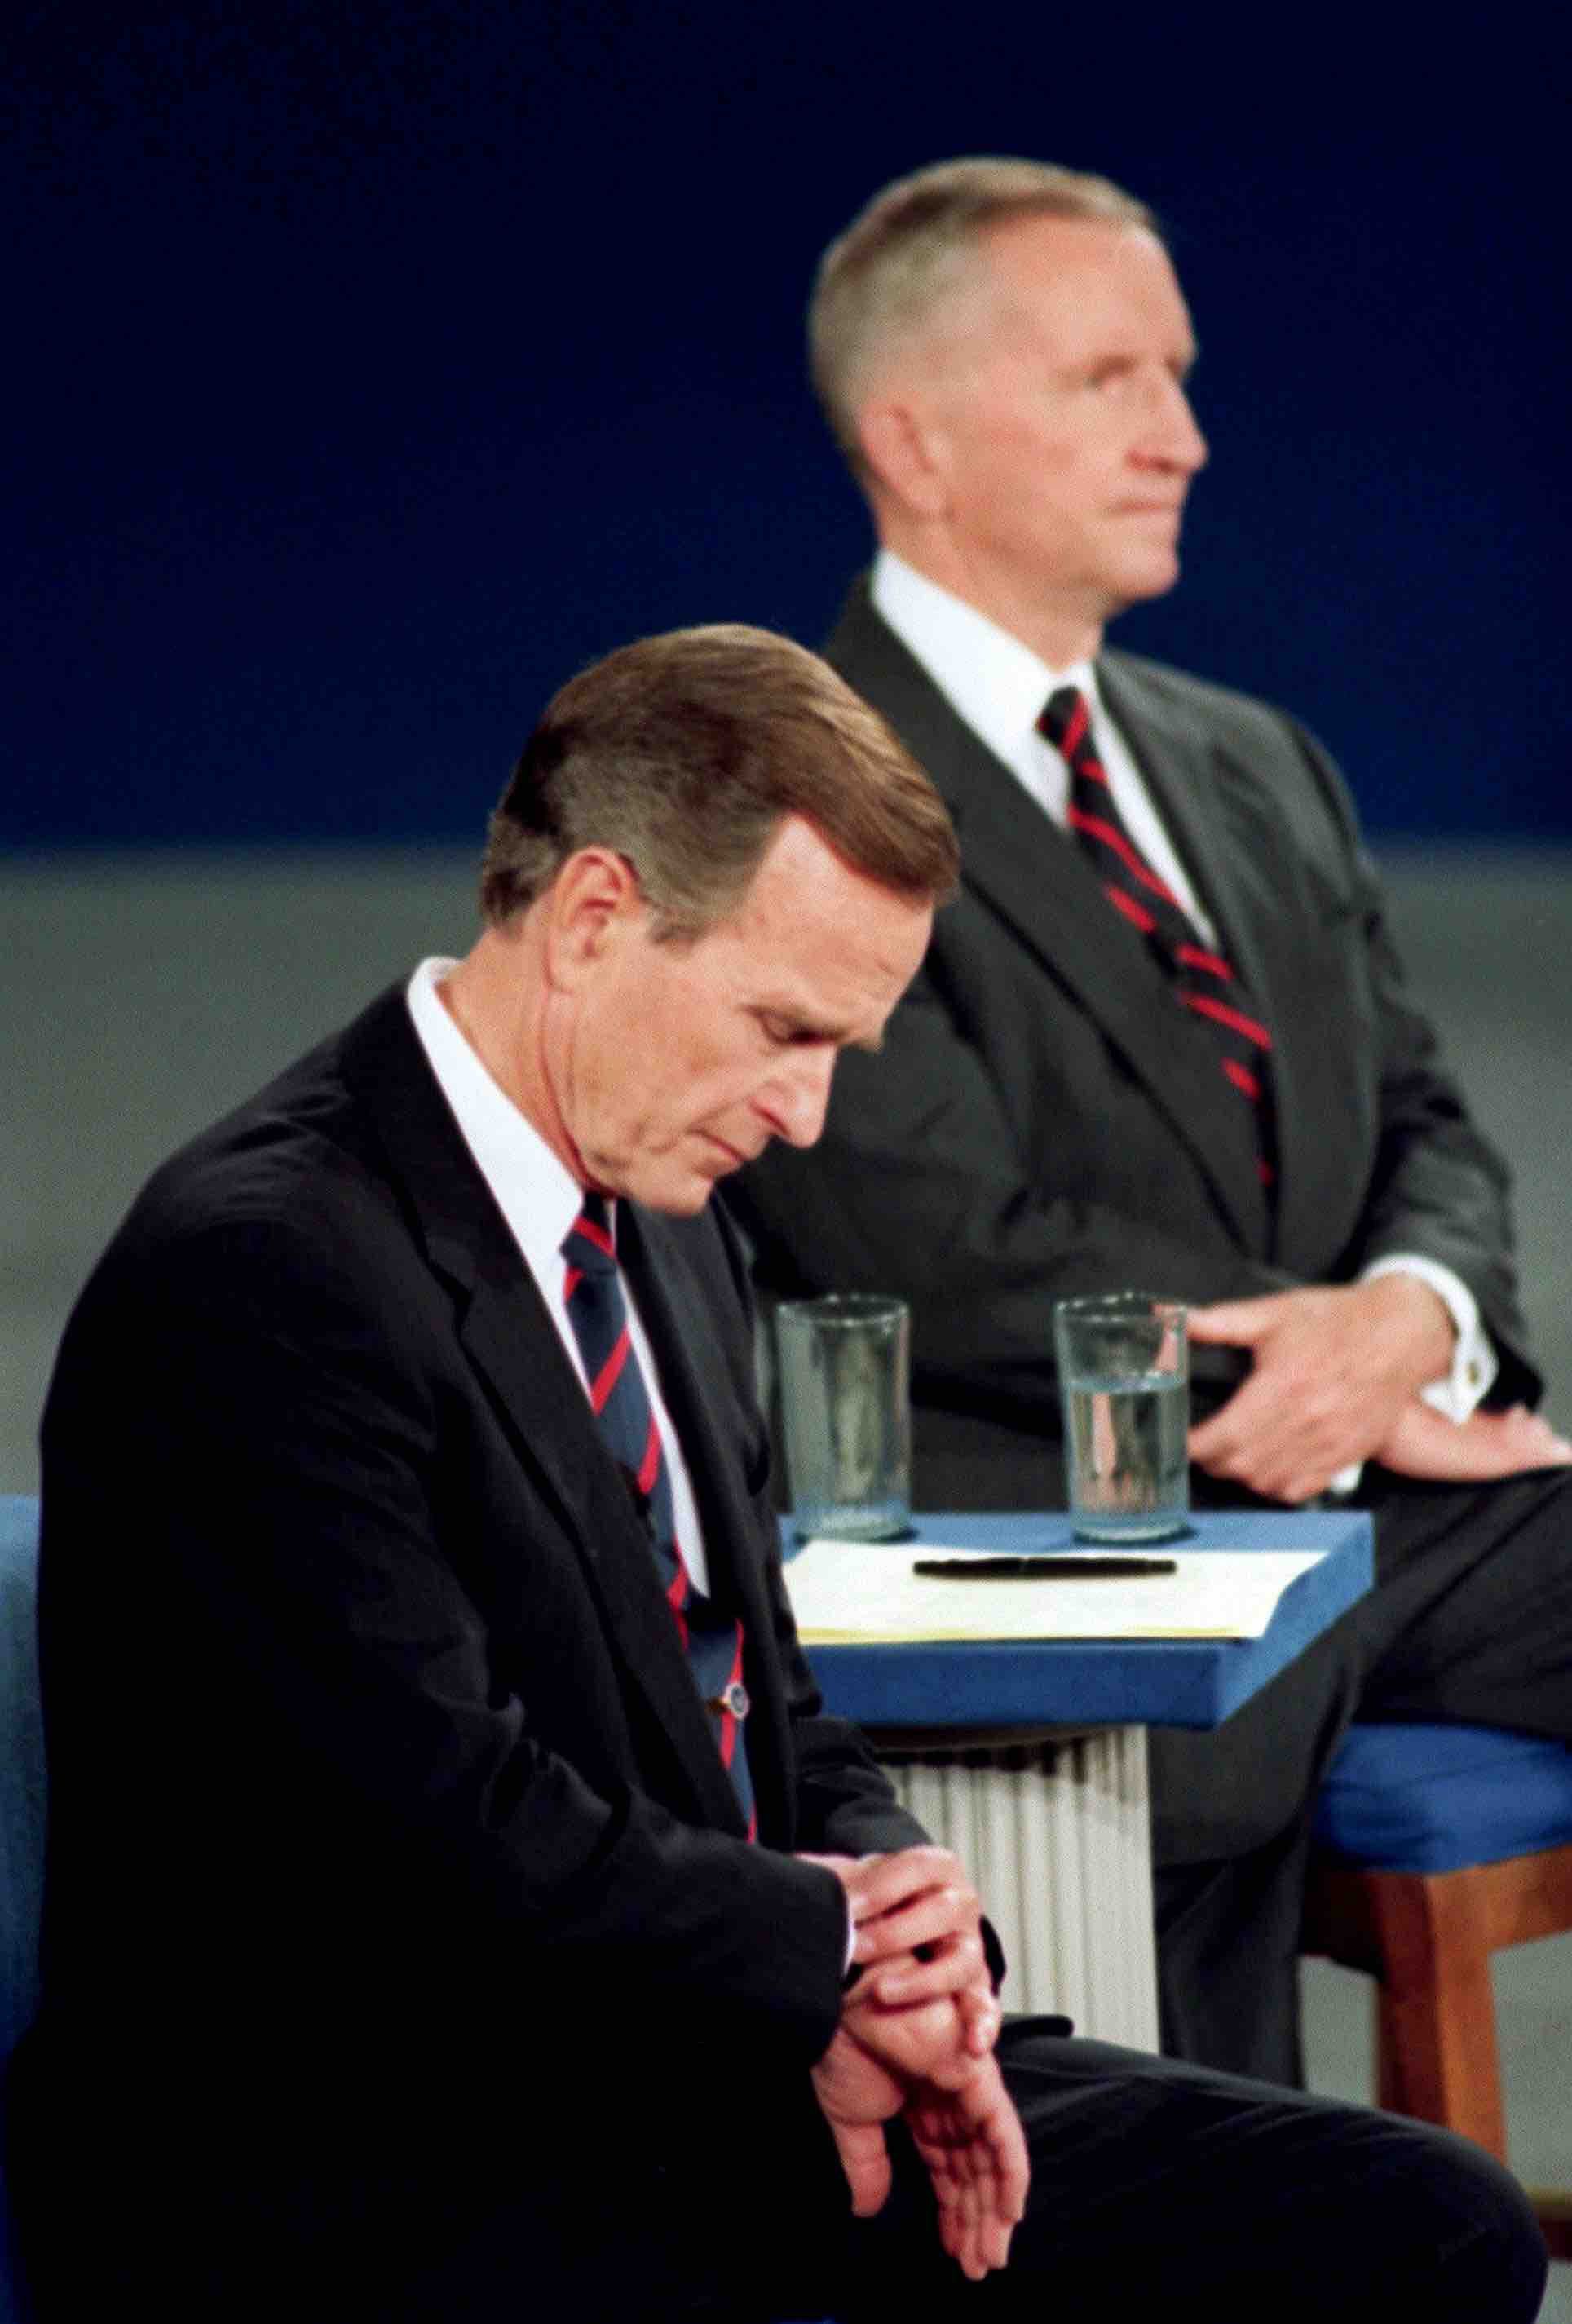 Bush the father glances at his wristwatch during the 1992 presidential debates